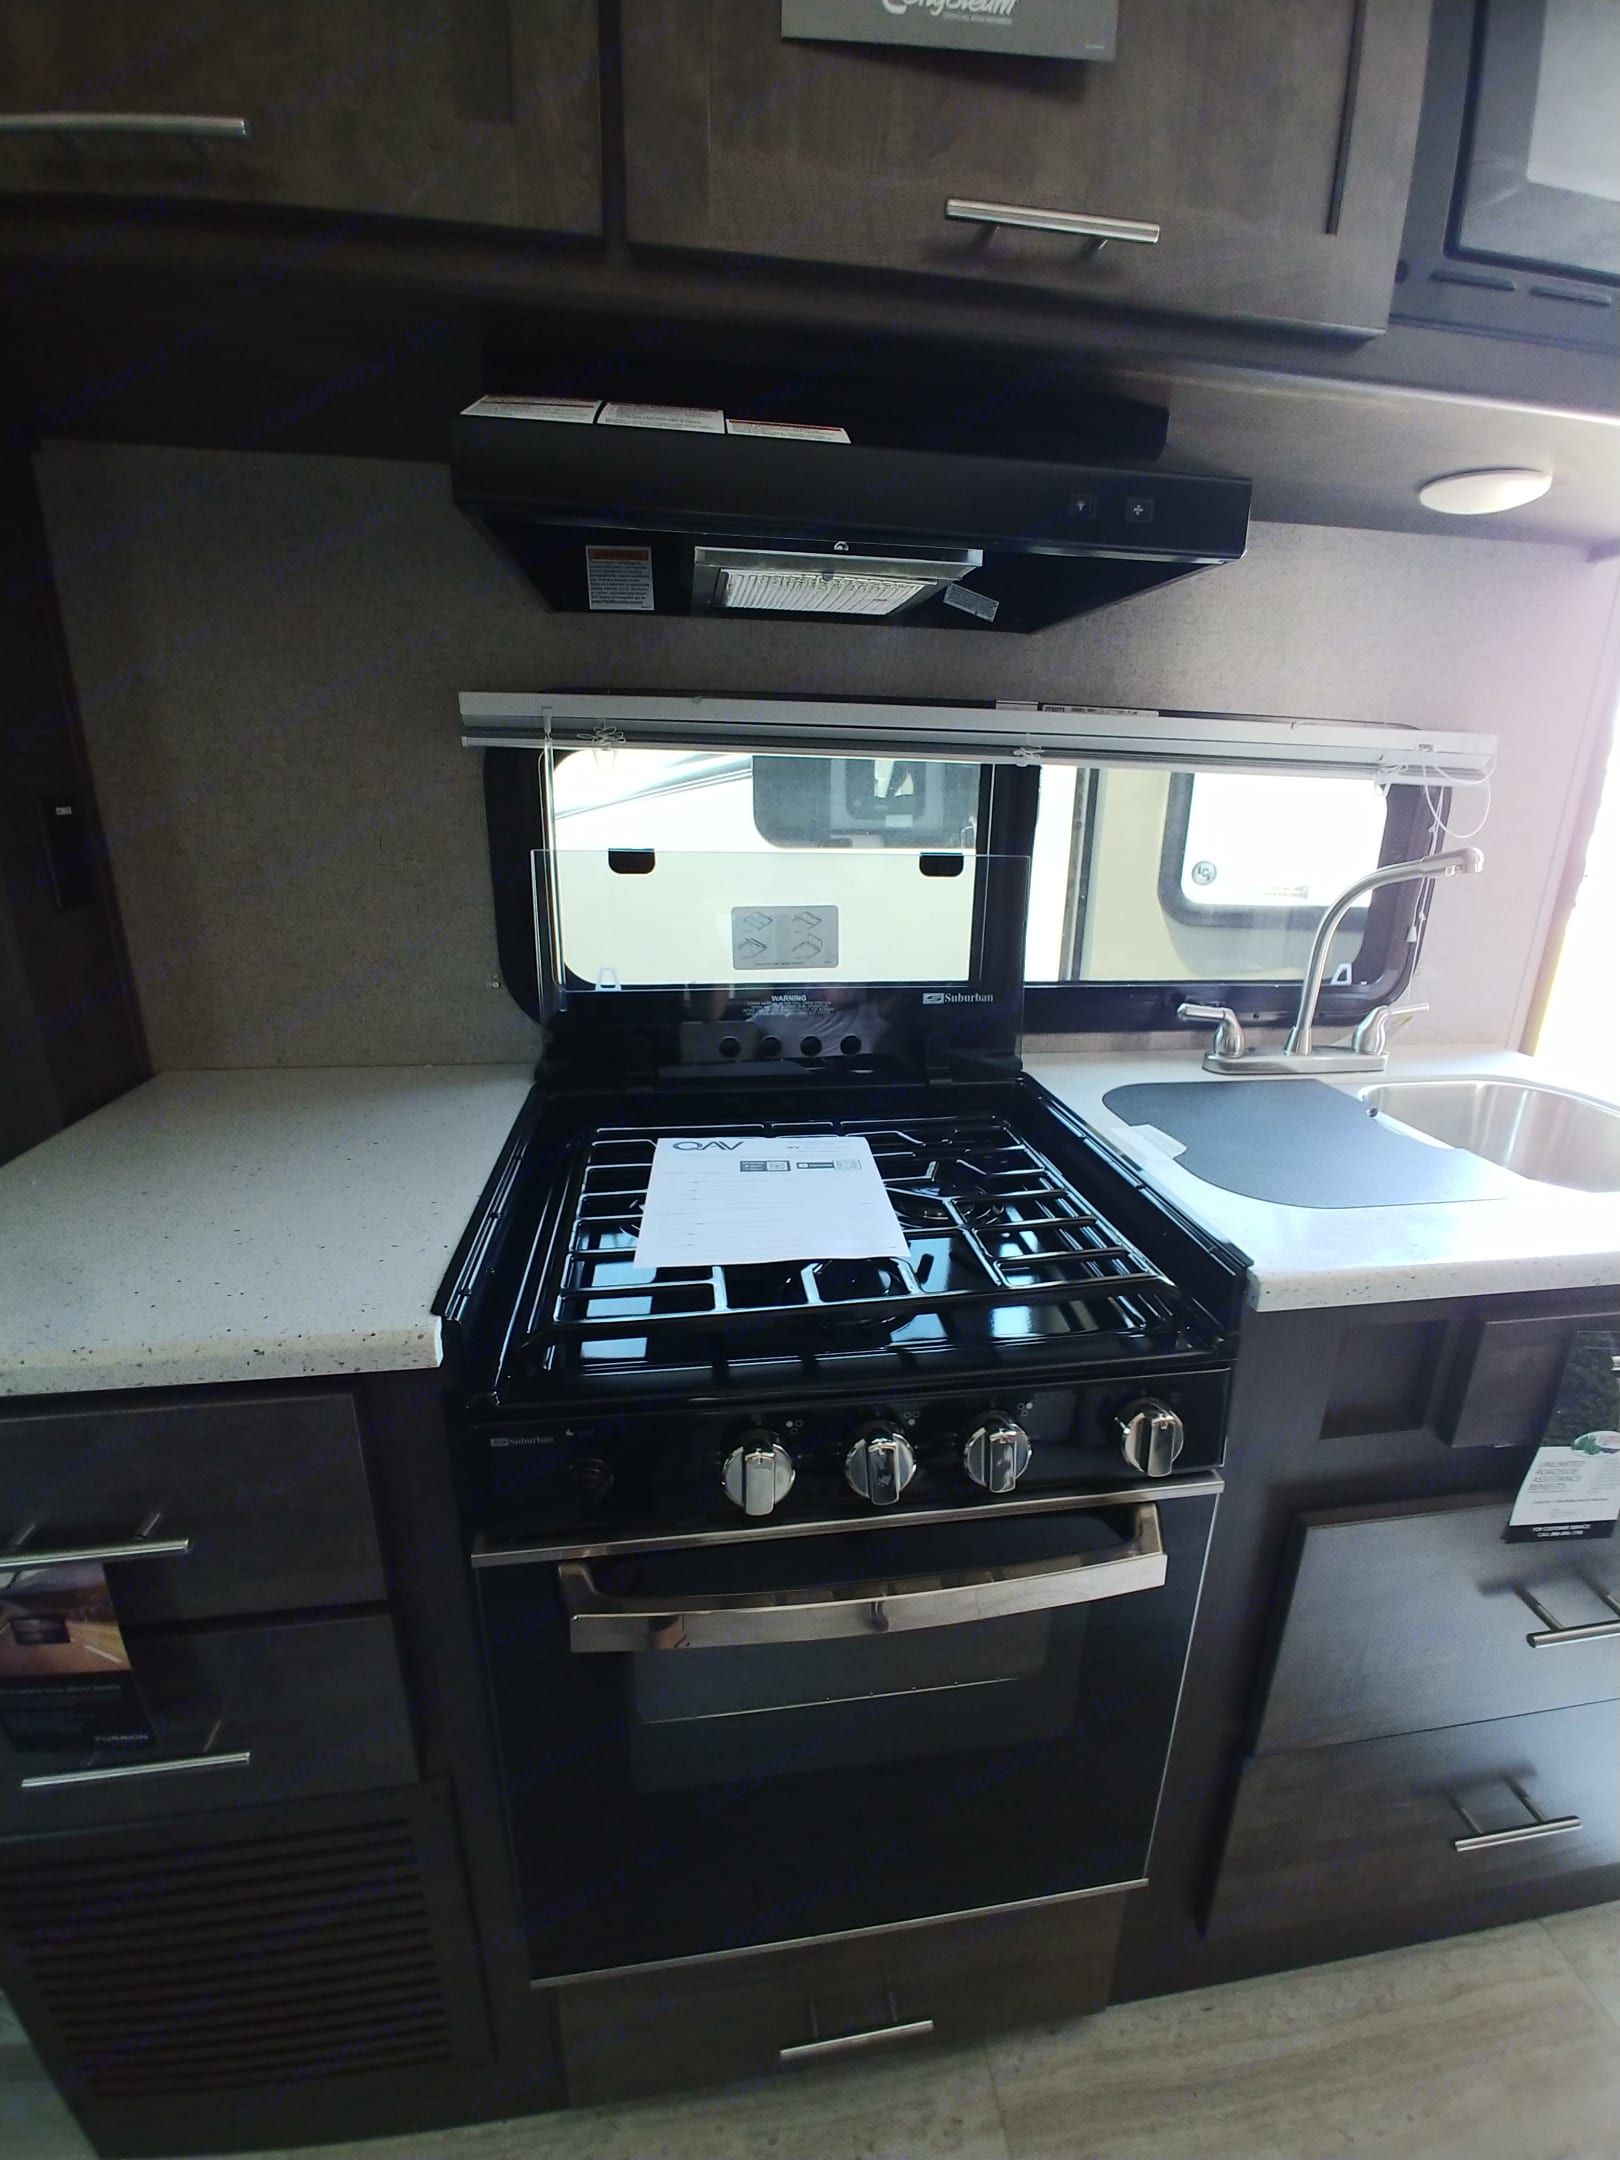 Gas stove with glass cover,, double-sided sink and real oven! Great storage space and counter space to work.. Forest River Rockwood Mini Lite 2019